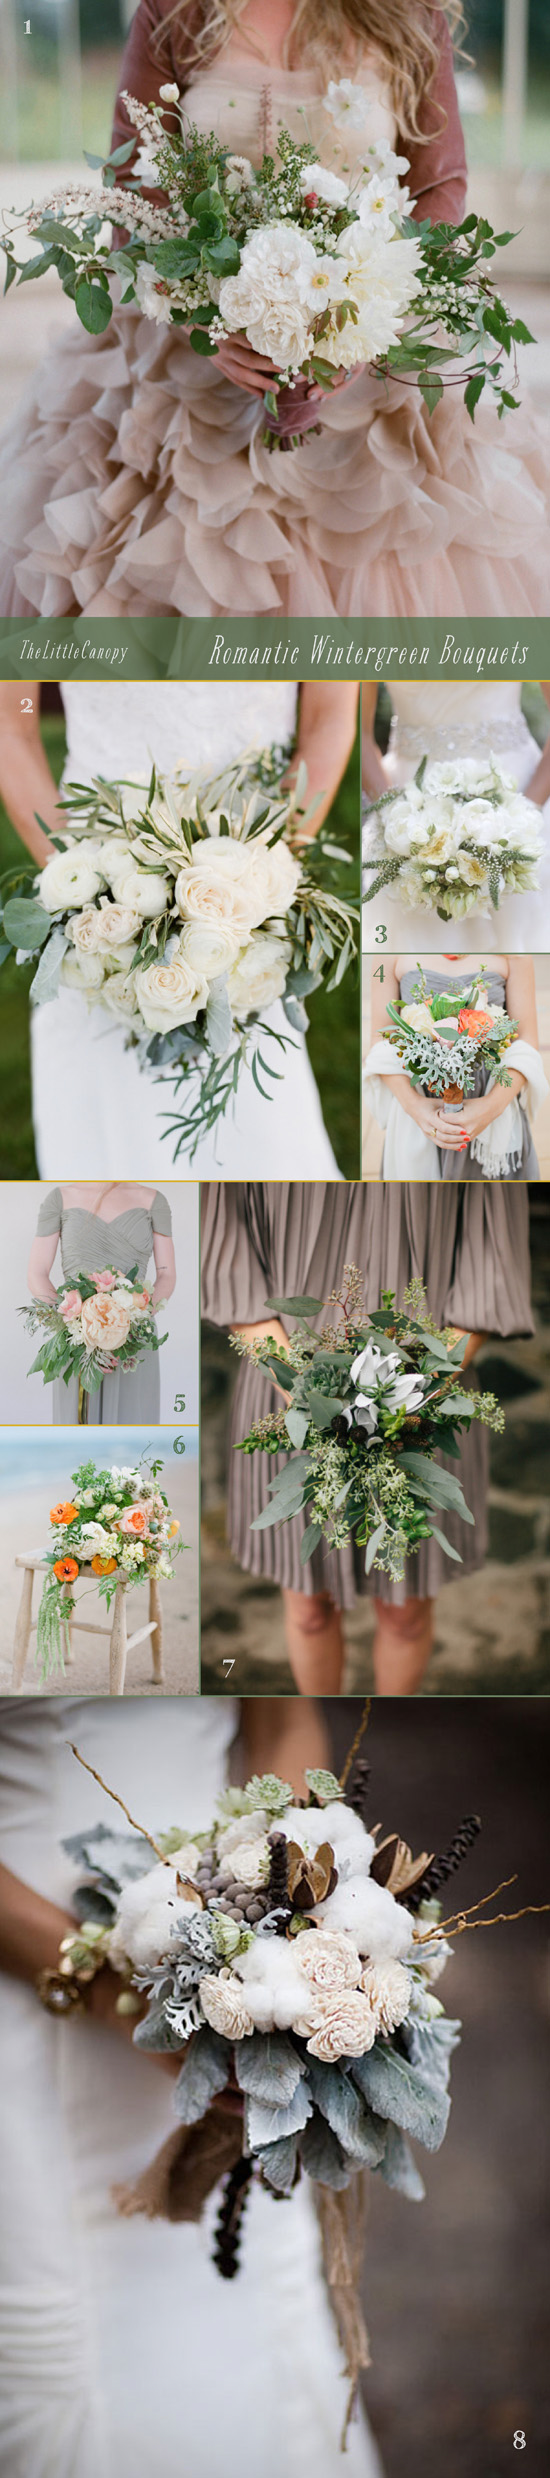 Exploring the romantic color of wintergreen, here is a mood board of different bouquet ideas that would look beautiful in a winter wedding! Love the natural faded look of wintergreen along with the long draped look of the leaves/sprigs.